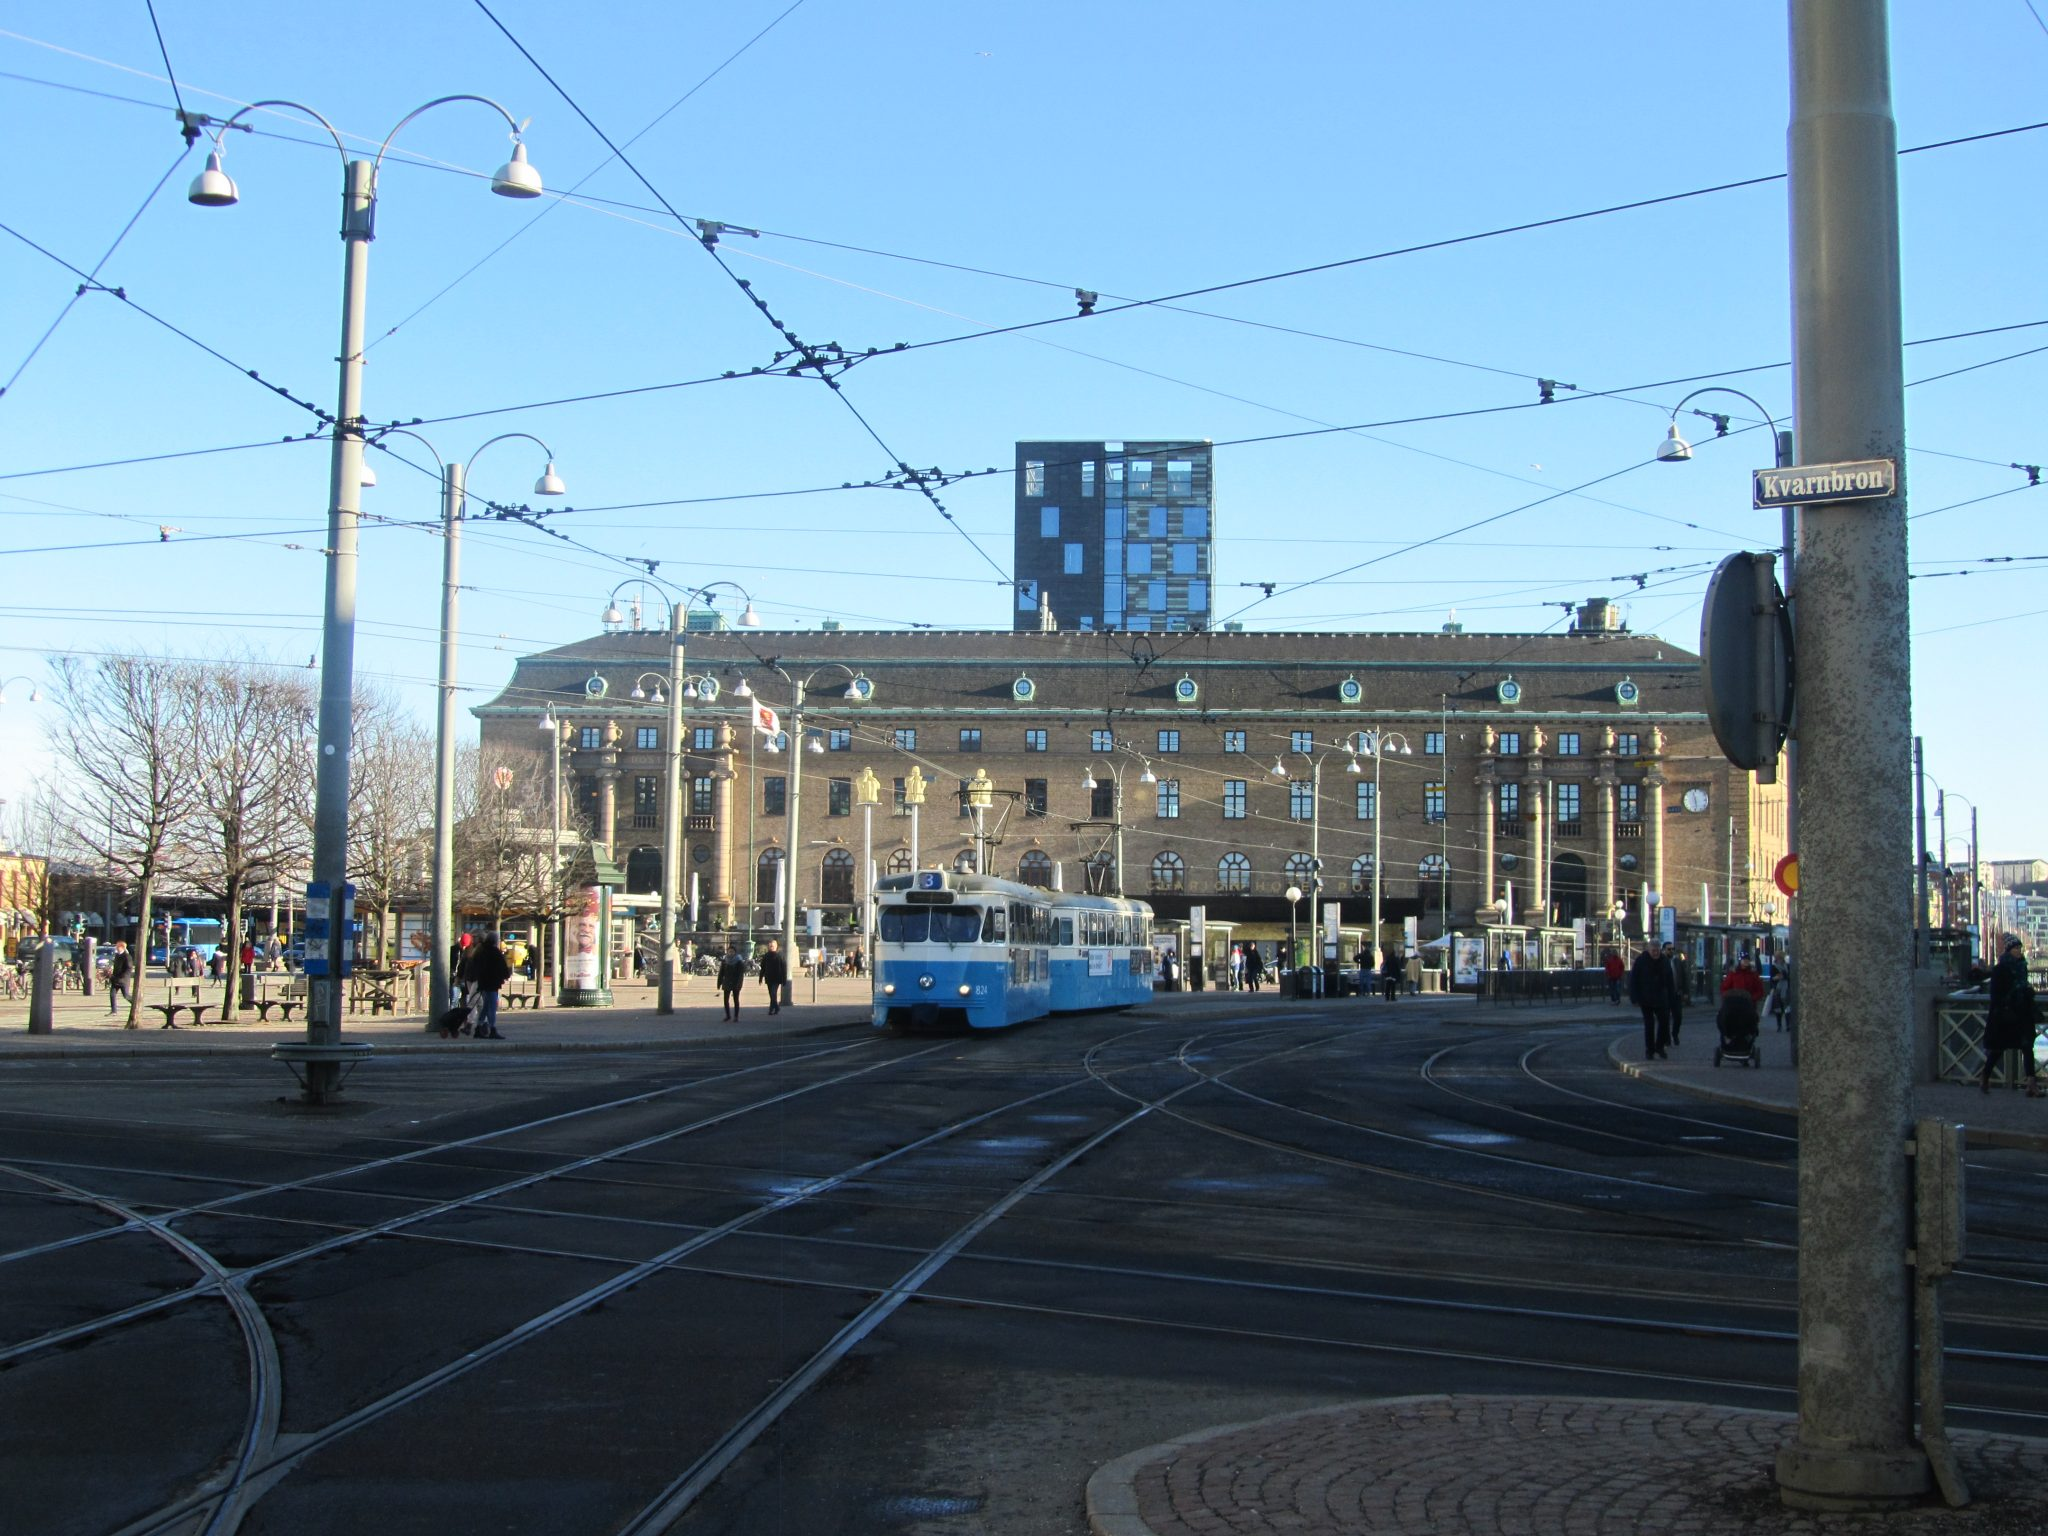 Central station and tram, Gothenburg